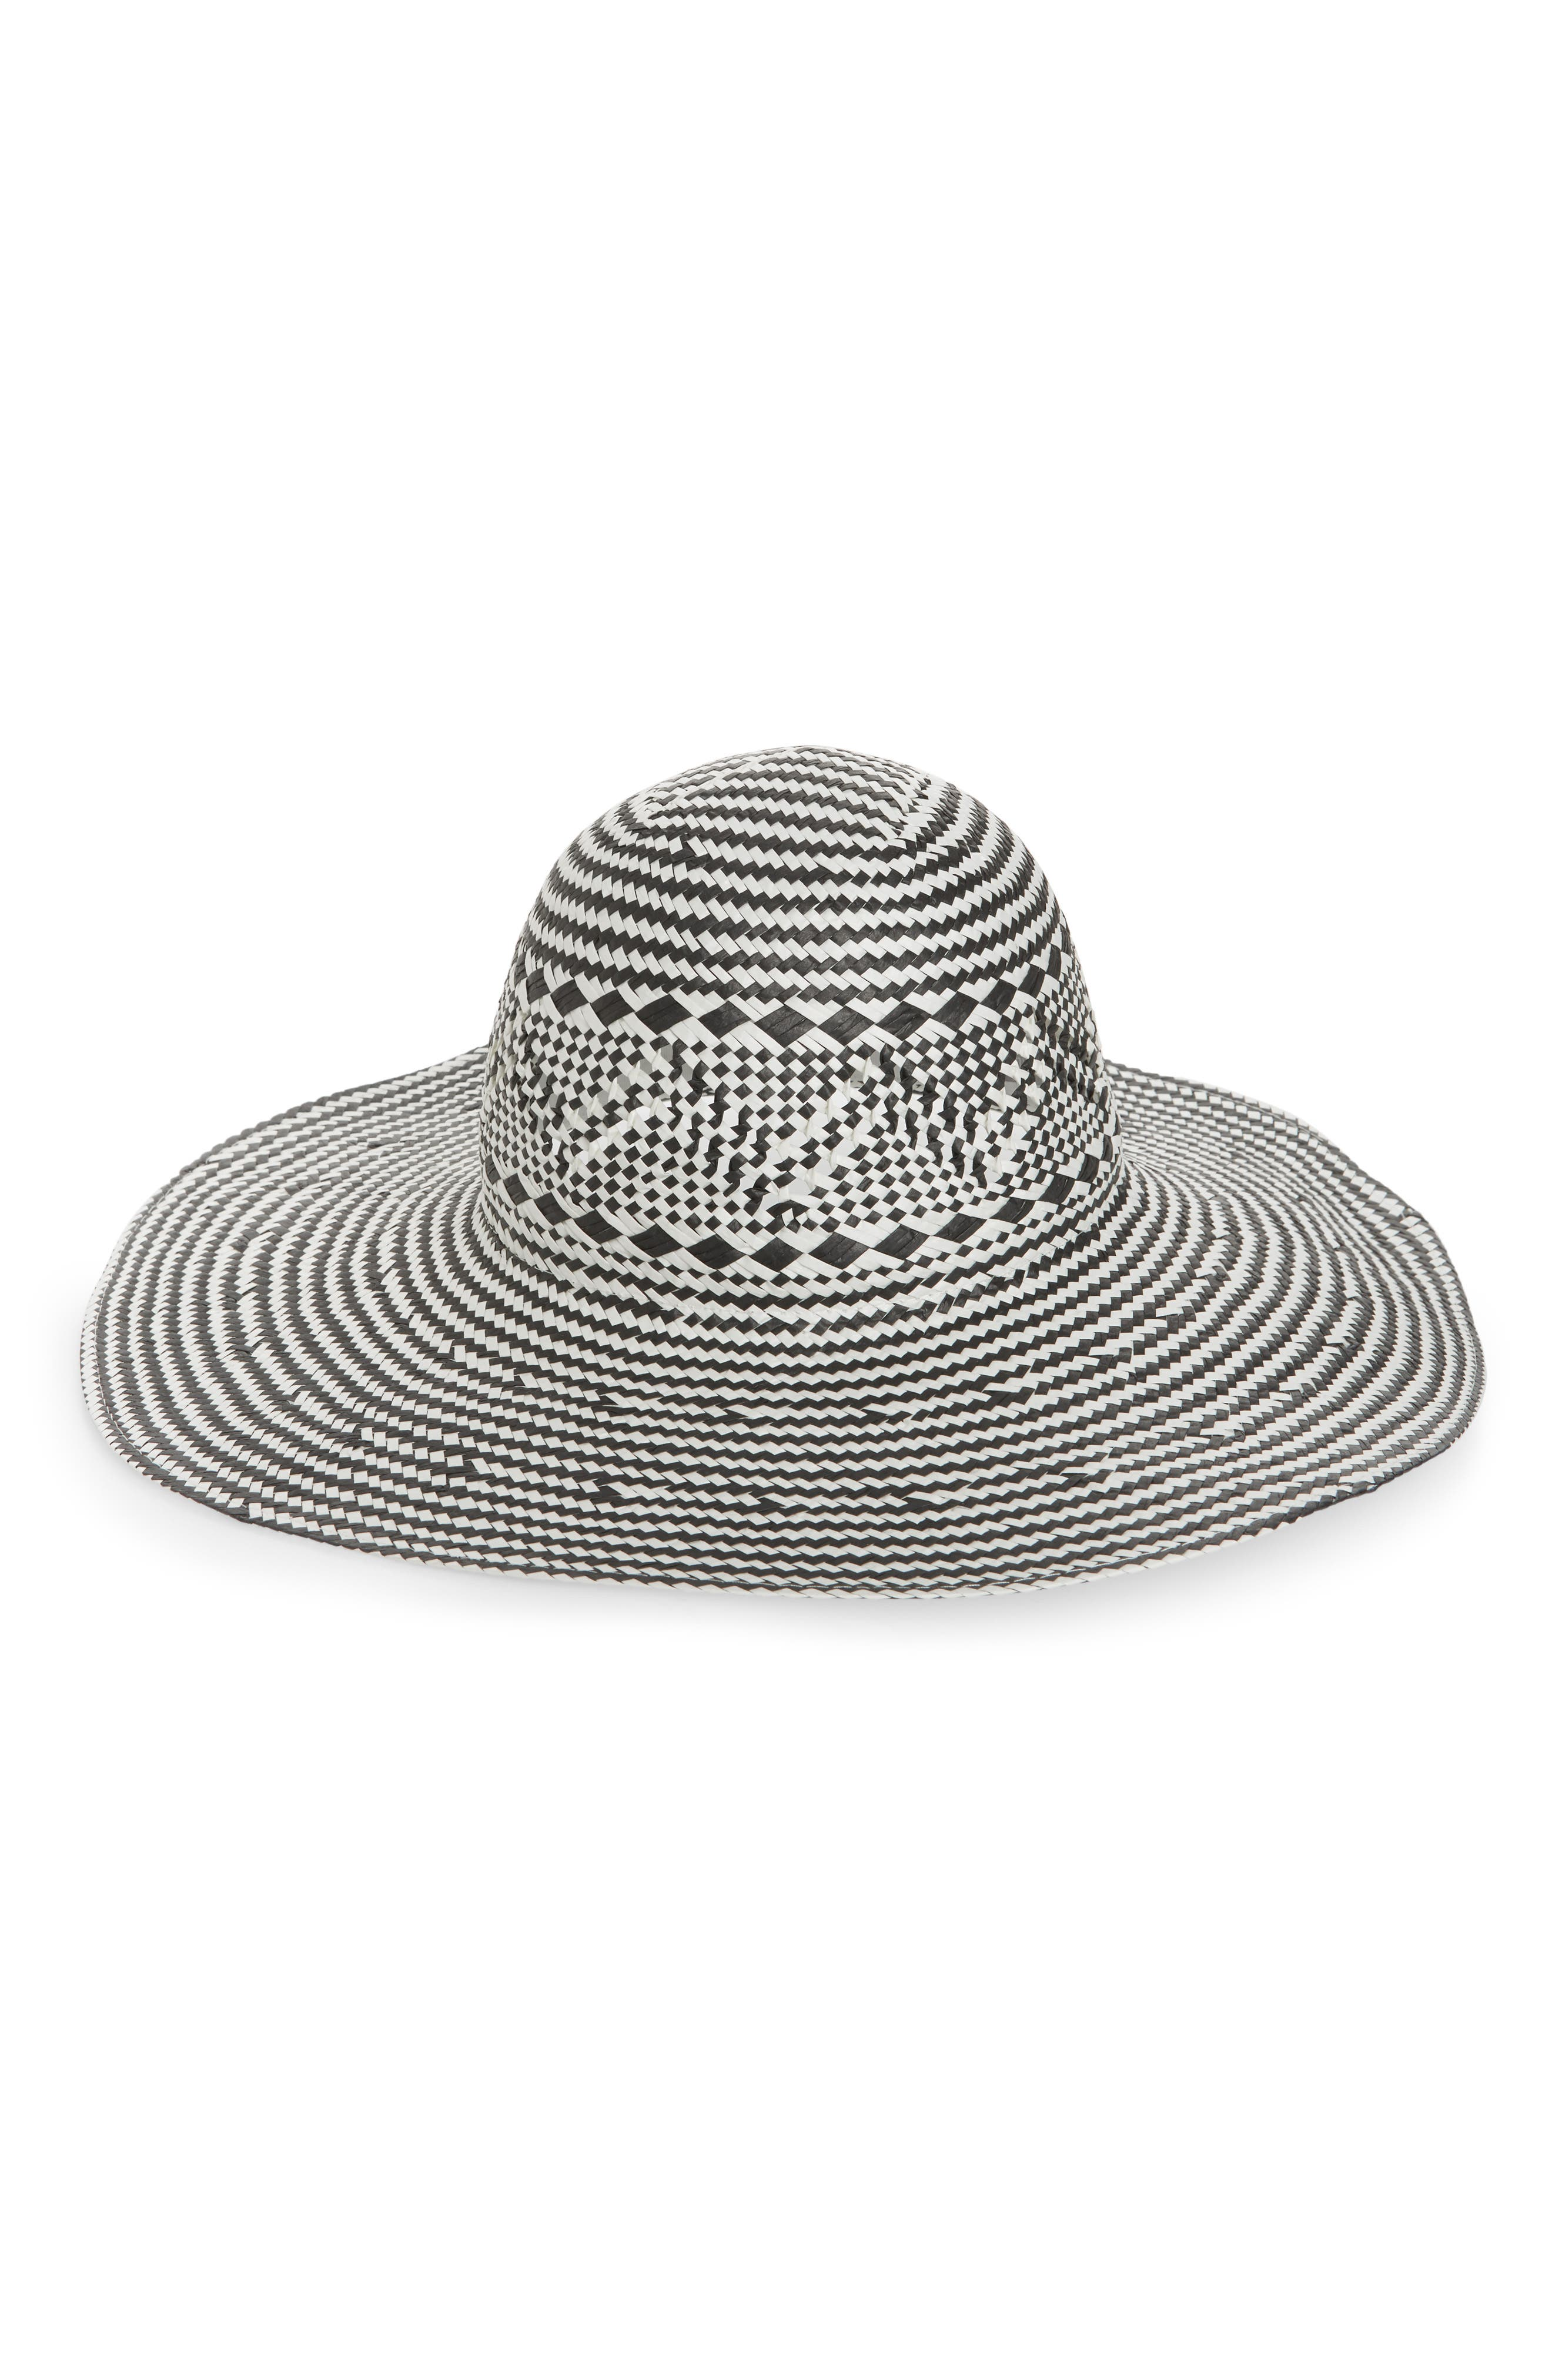 Two-Tone Floppy Straw Hat,                             Main thumbnail 1, color,